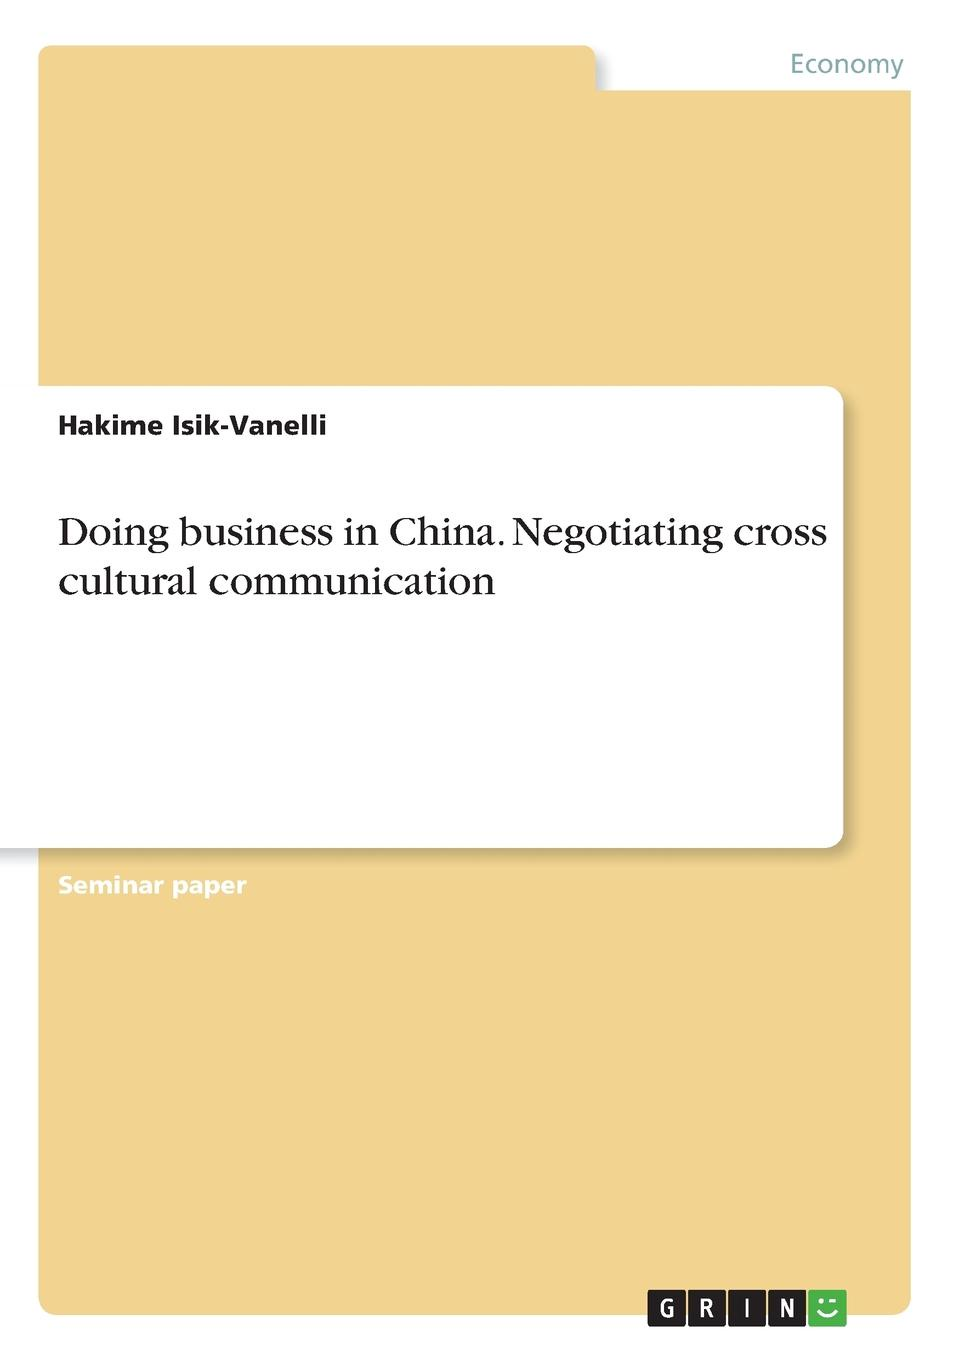 Hakime Isik-Vanelli Doing business in China. Negotiating cross cultural communication the rough guide to china